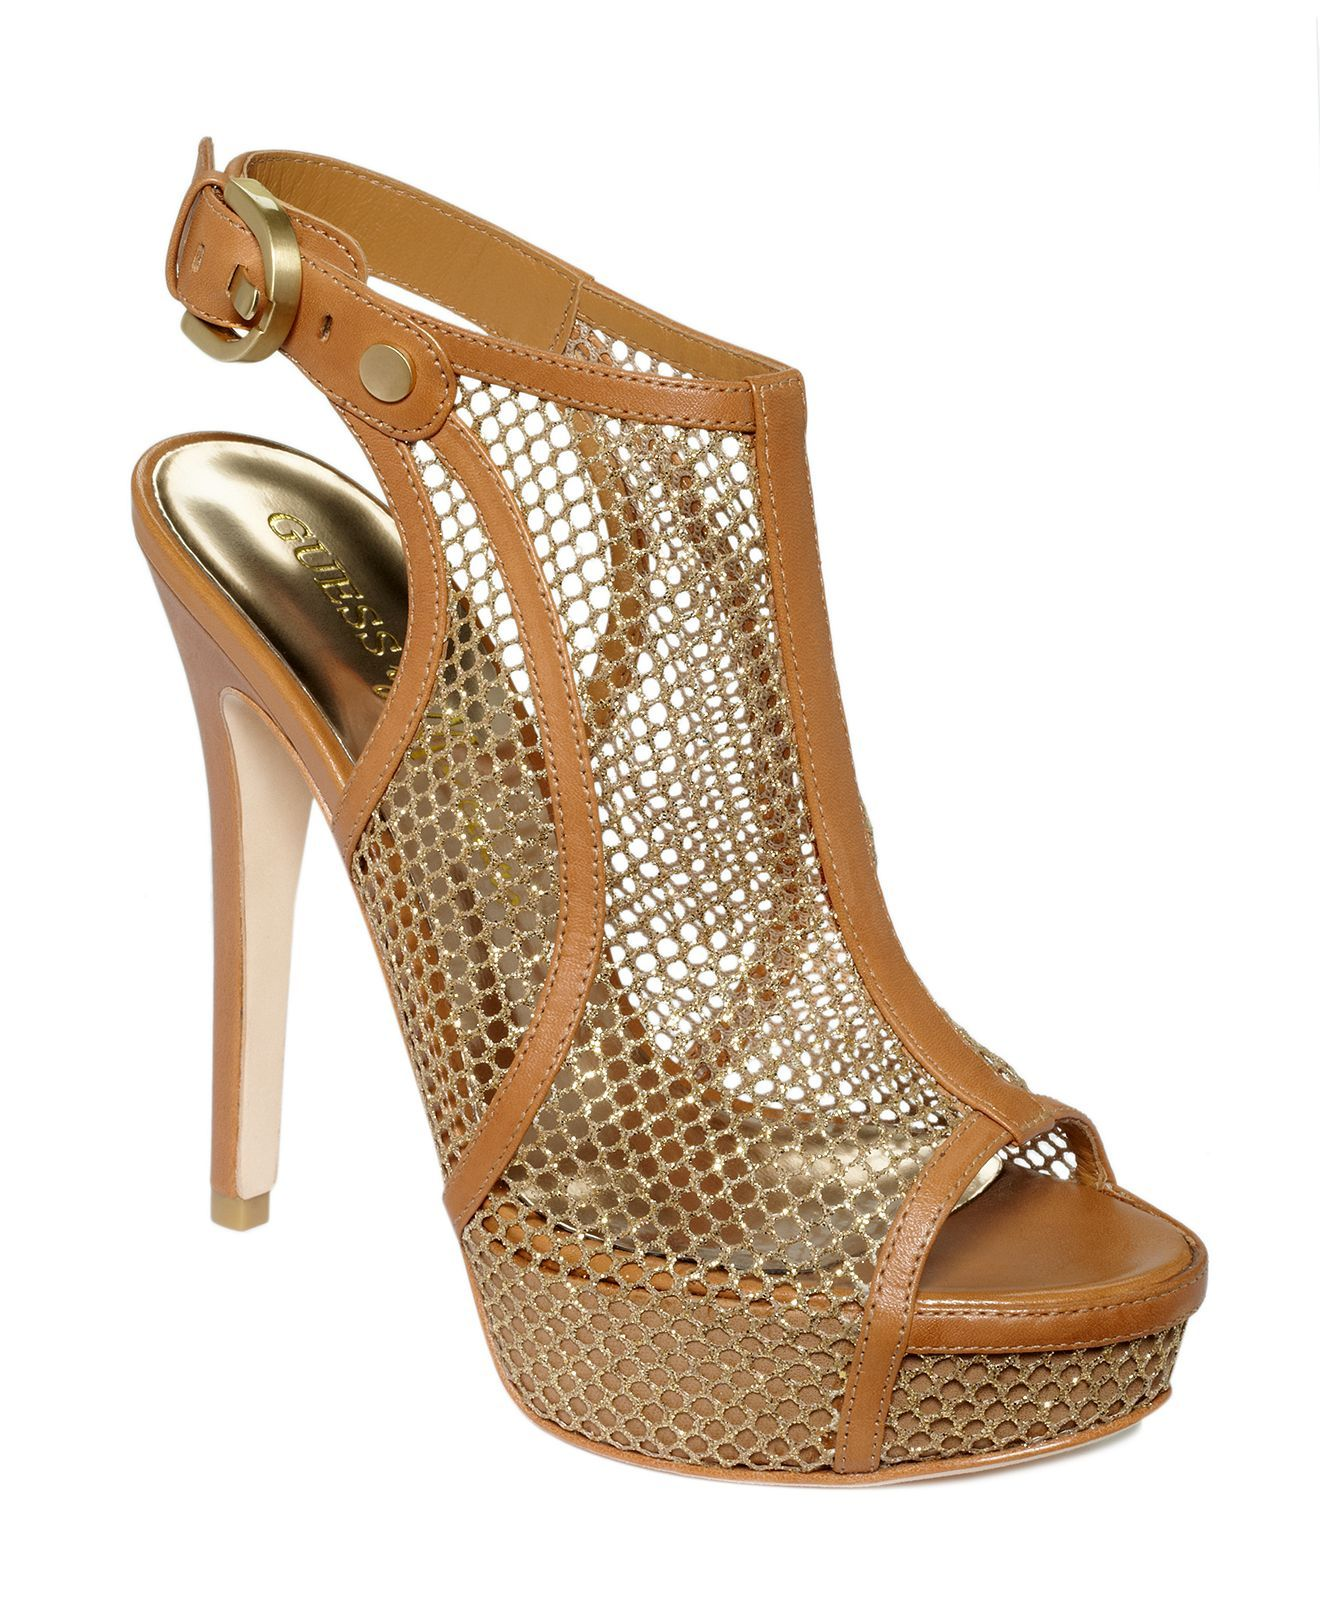 GUESS by Marciano Karlee Platform Sandals - Sandals - Shoes - Macy's